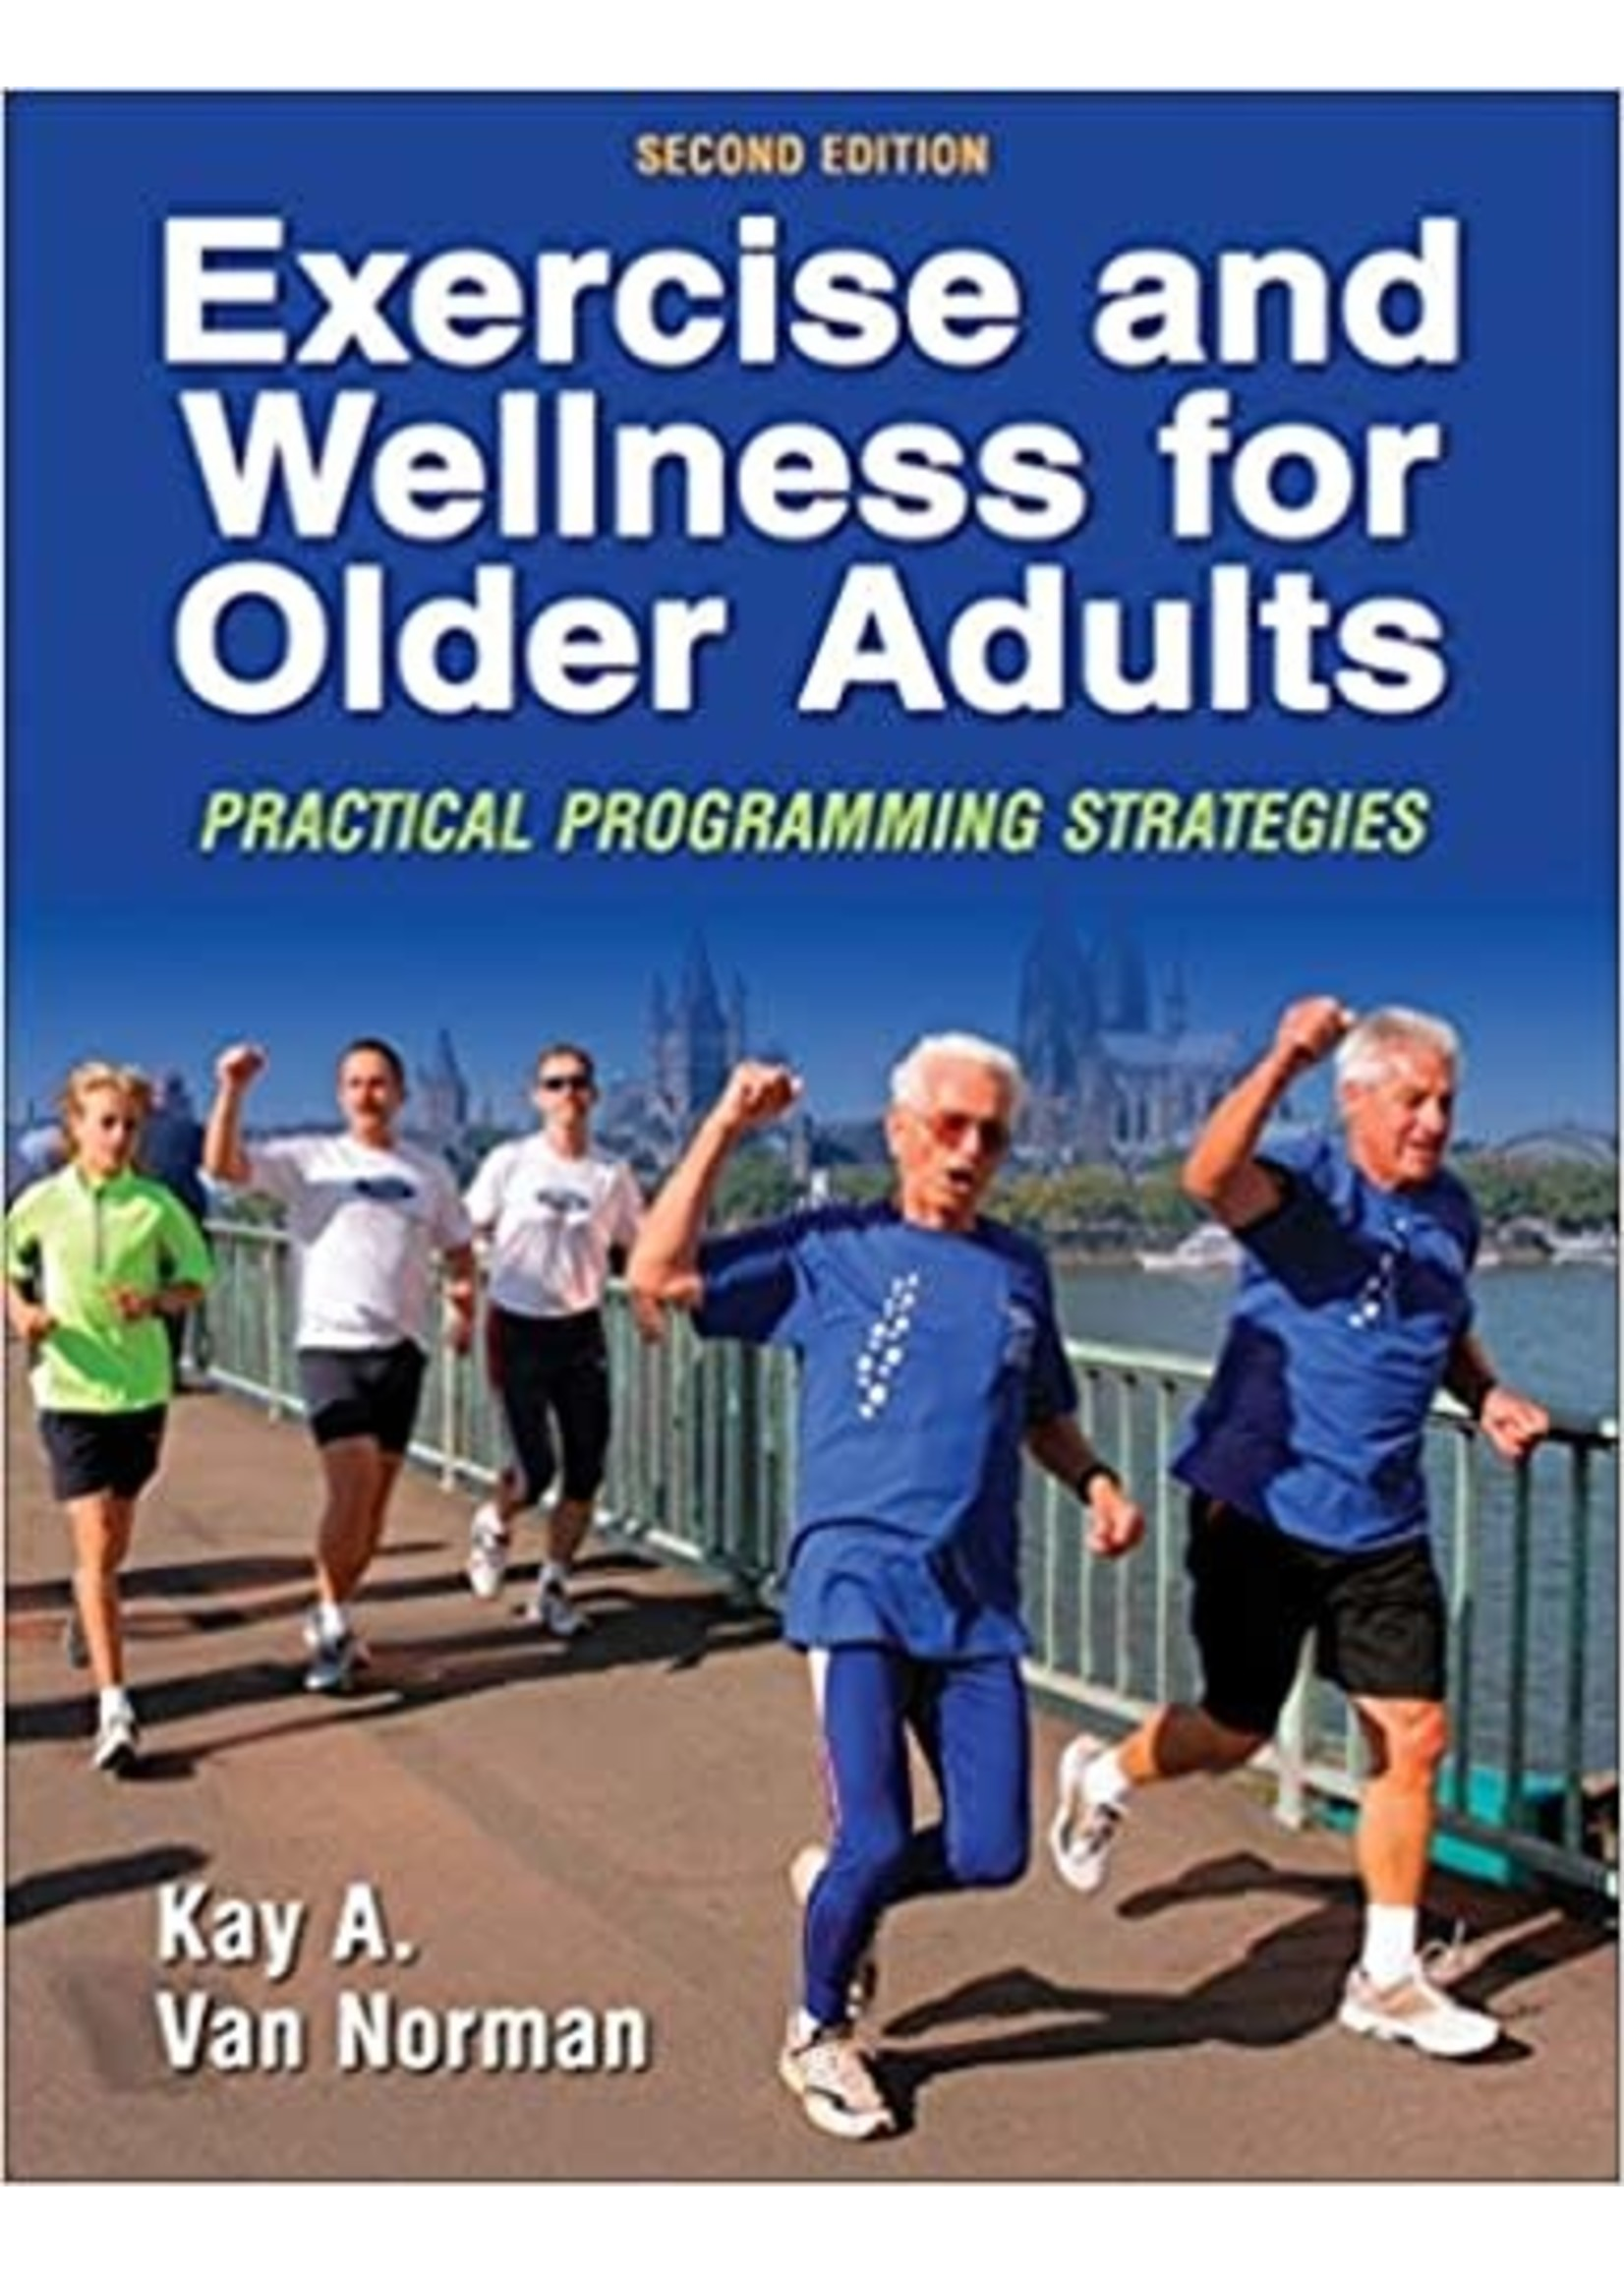 EXNS494 EXERCISE + WELLNESS FOR OLDER ADULTSER A DULTS